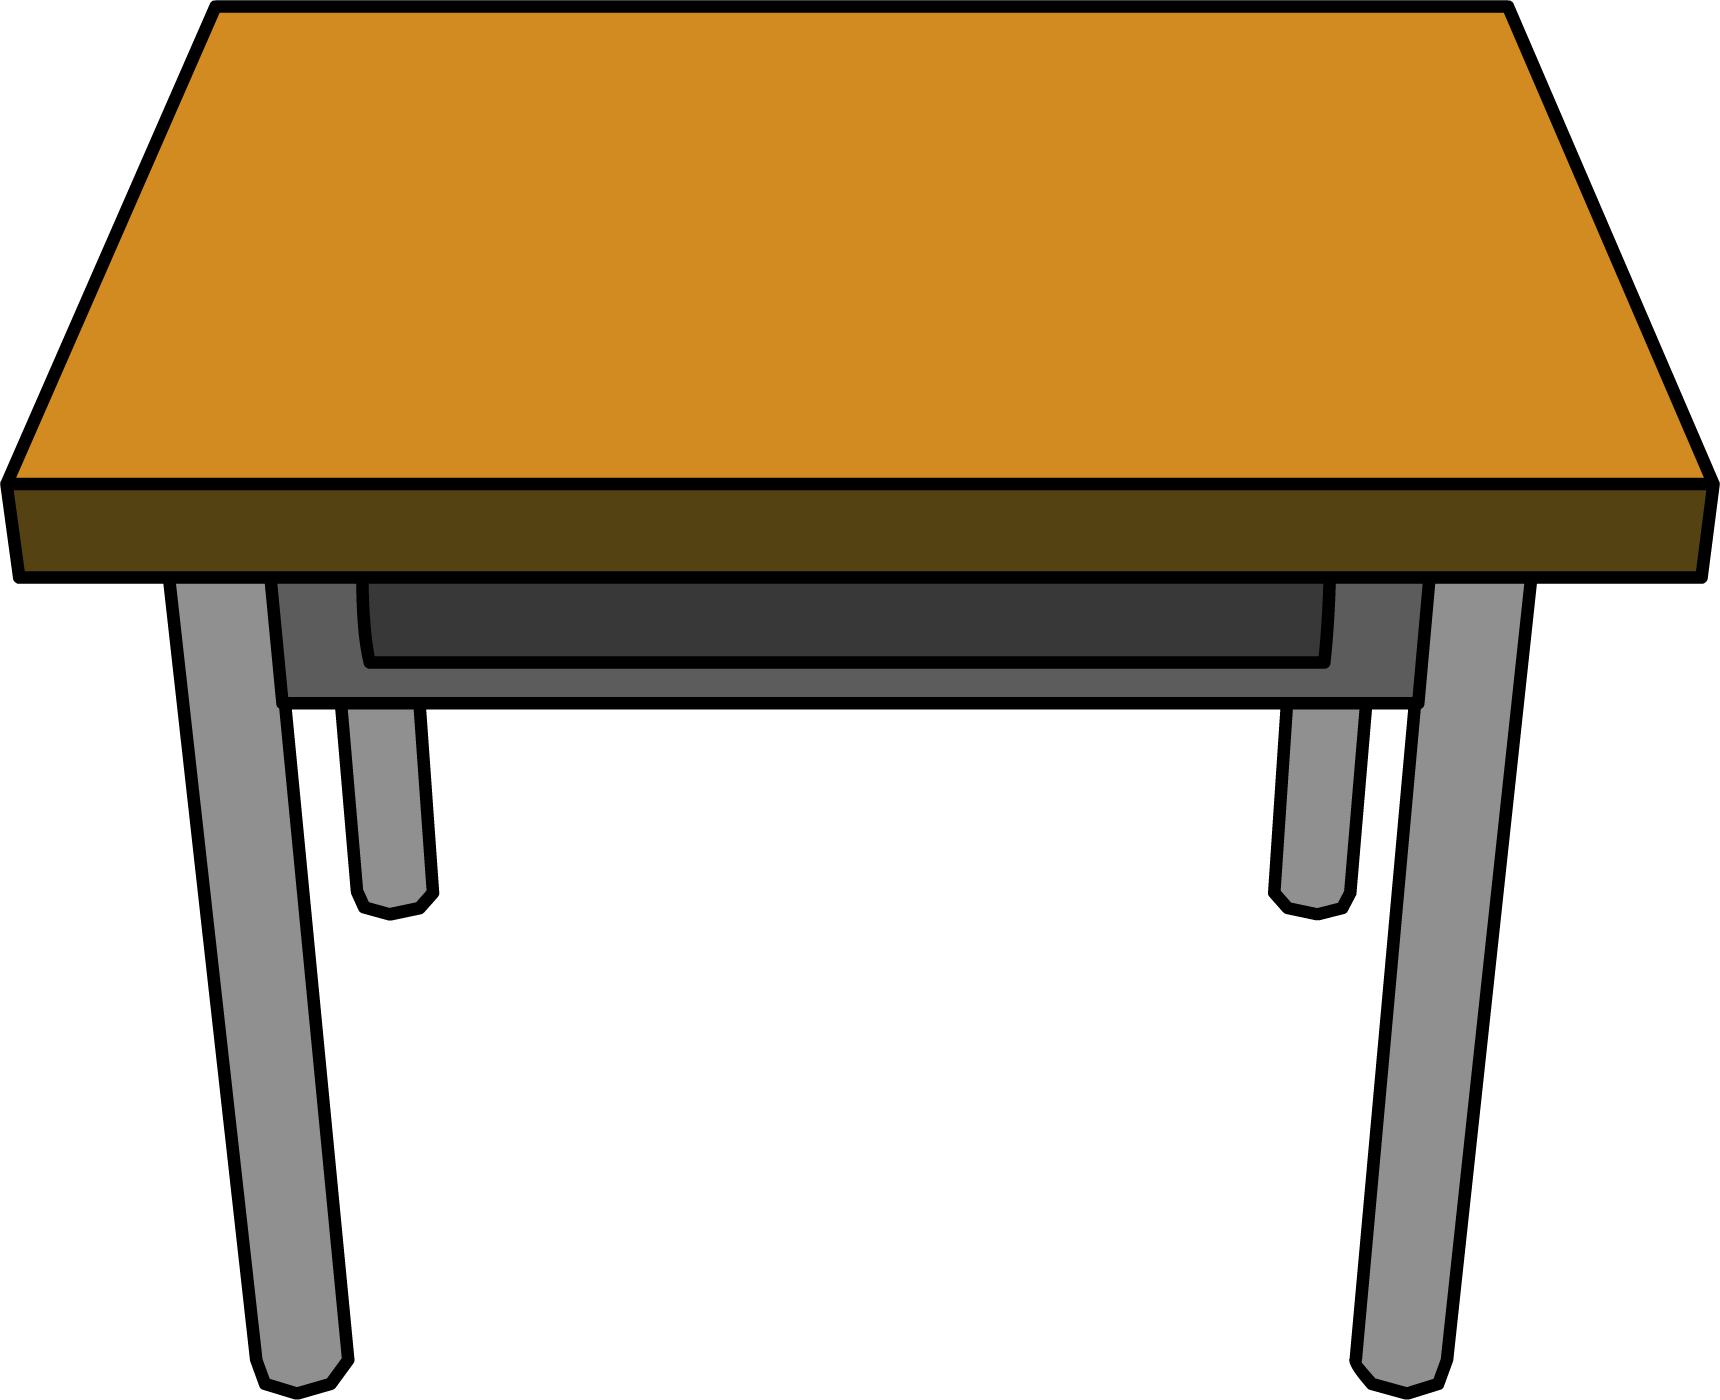 Table Clipart No Background.